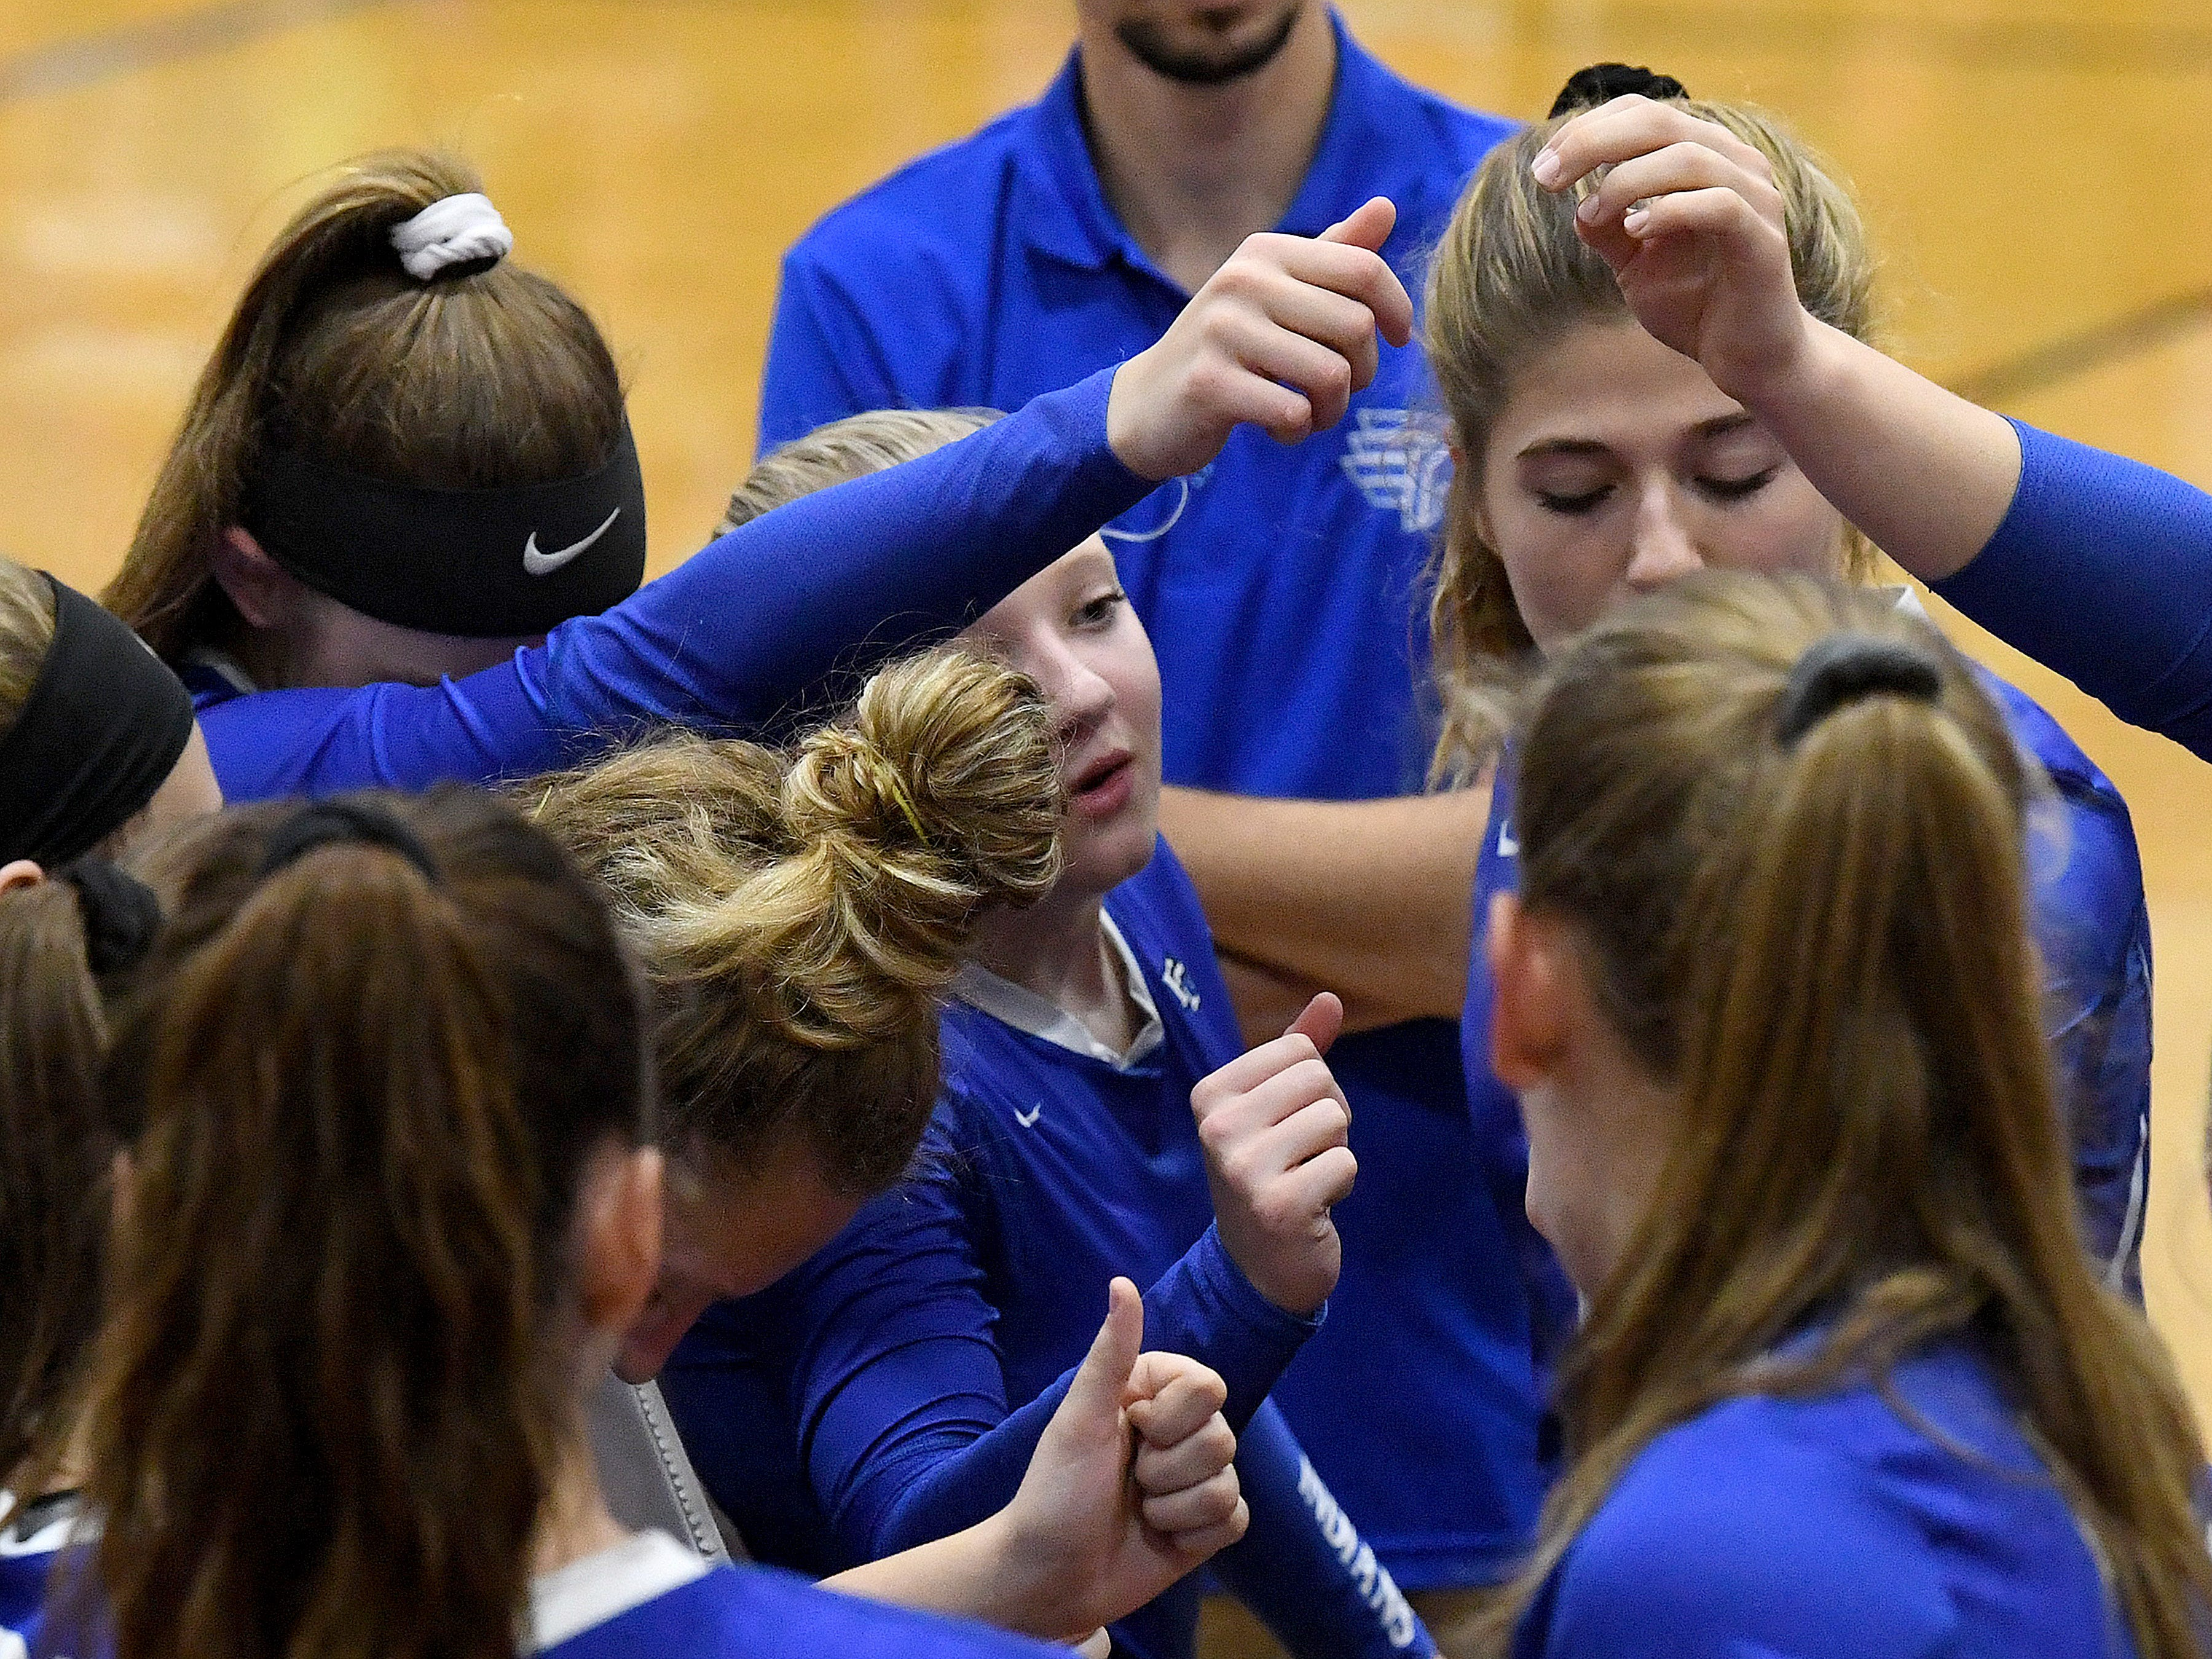 Fort Defiance comes together as a team on the sidelines during a Region 3C semifinal match played in Lexington on Monday, Nov. 5, 2018.